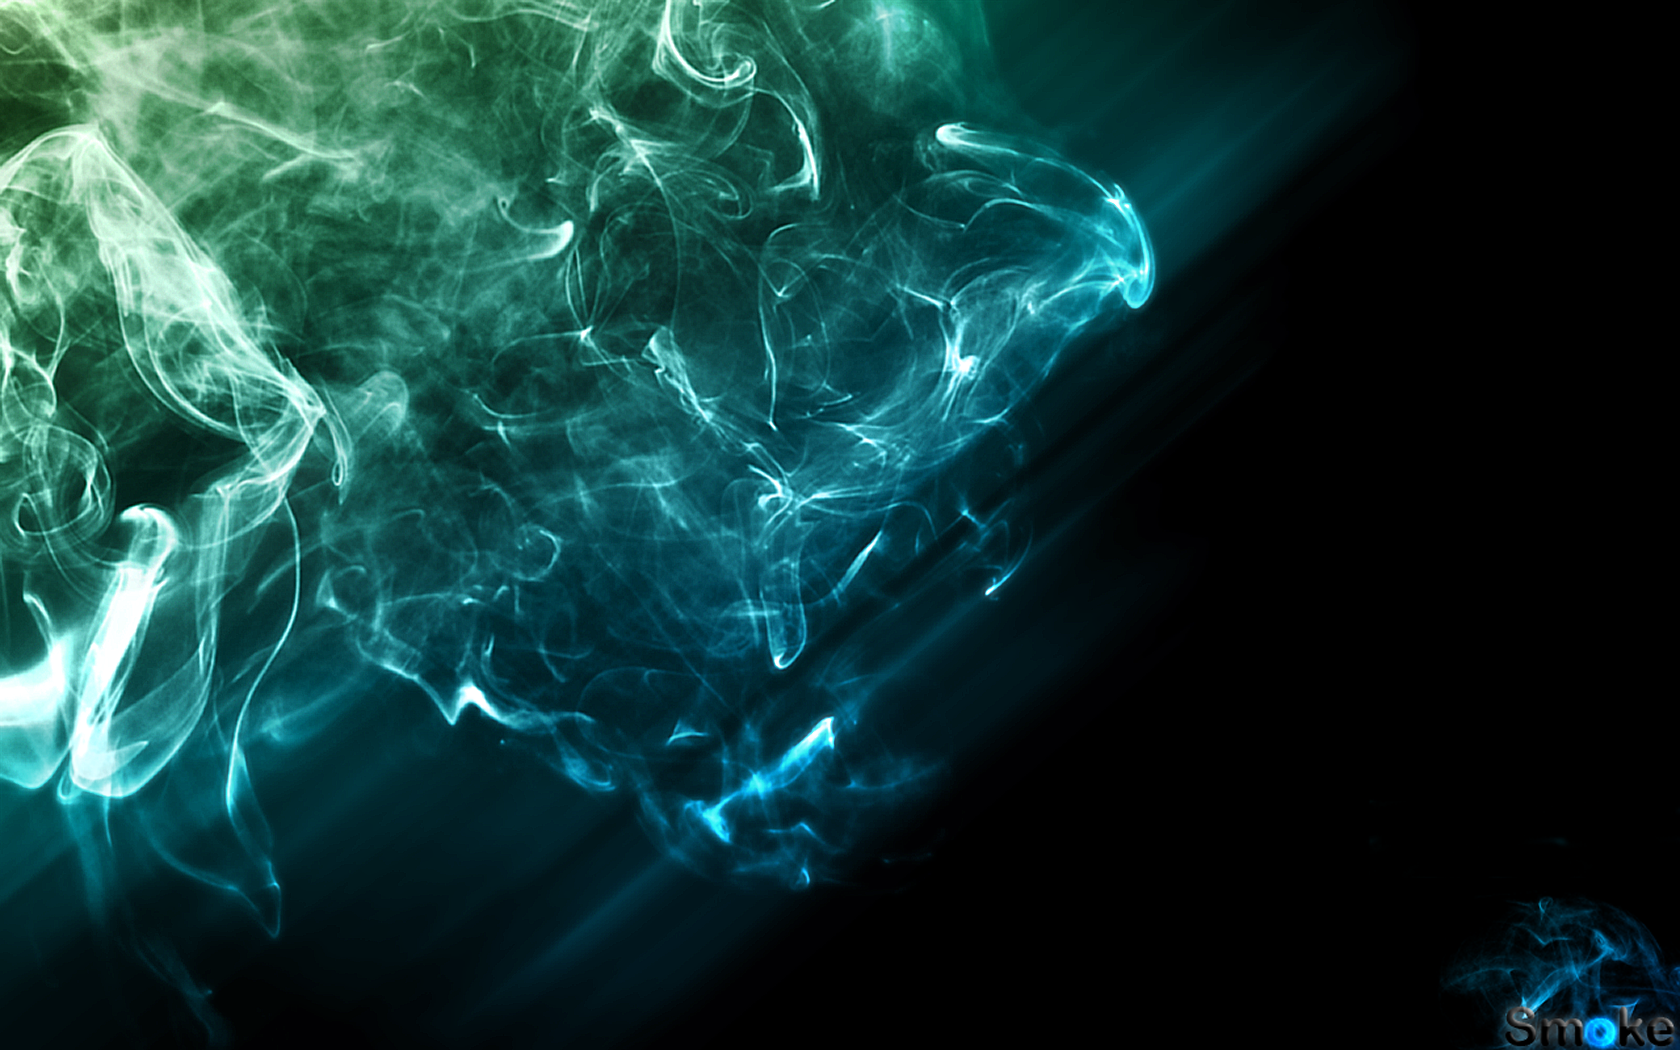 Smoke Wallpaper by Teundenouden